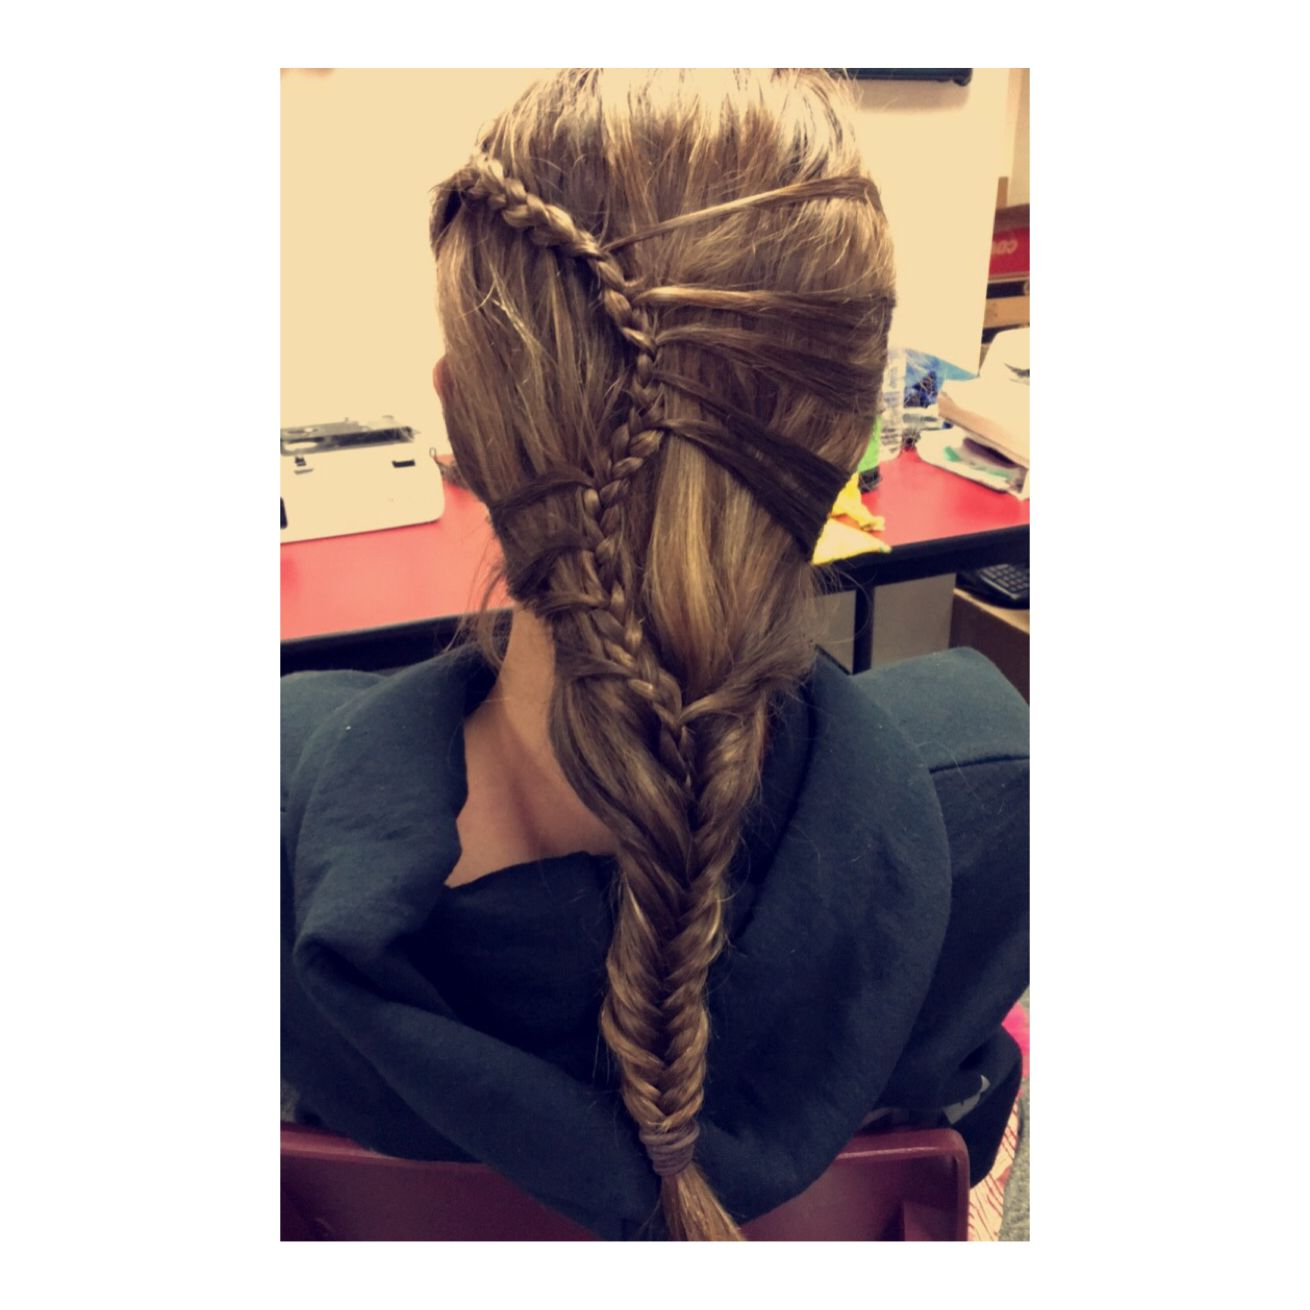 Played around with my friends hair during school! So please with the result... Mermaid braid into a fishtail